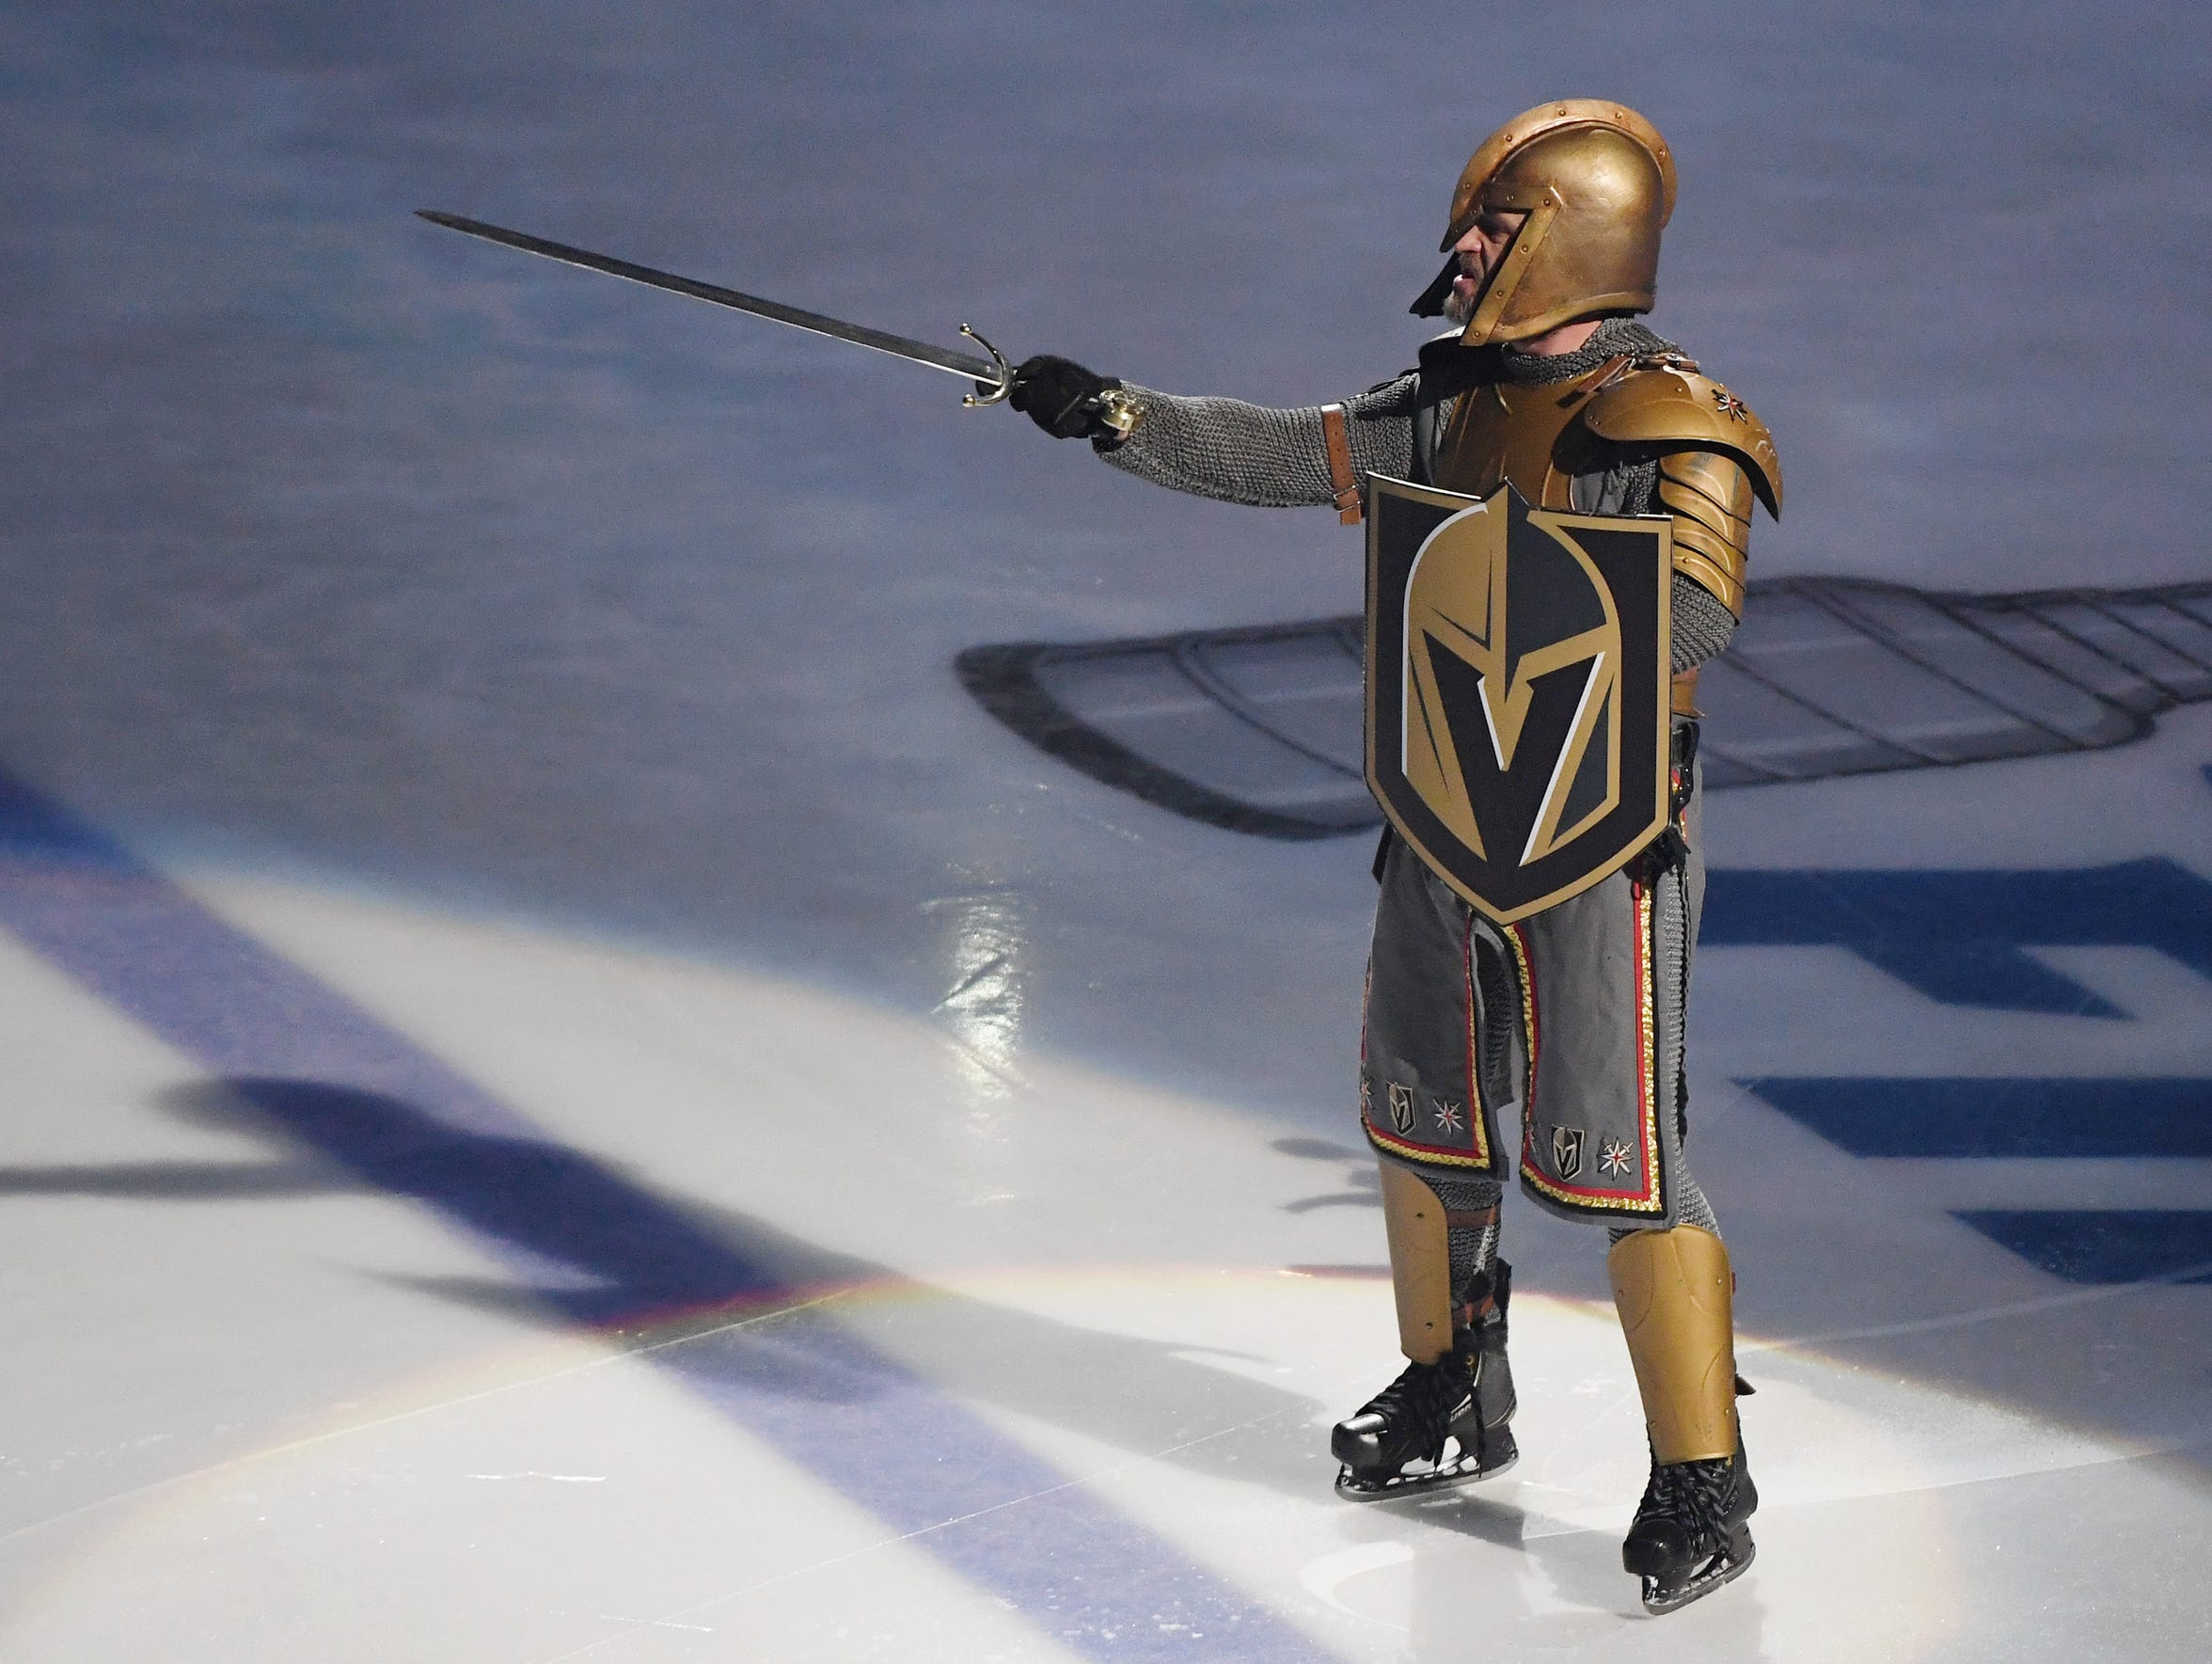 Lee Orchard as the Golden Knight performs during a